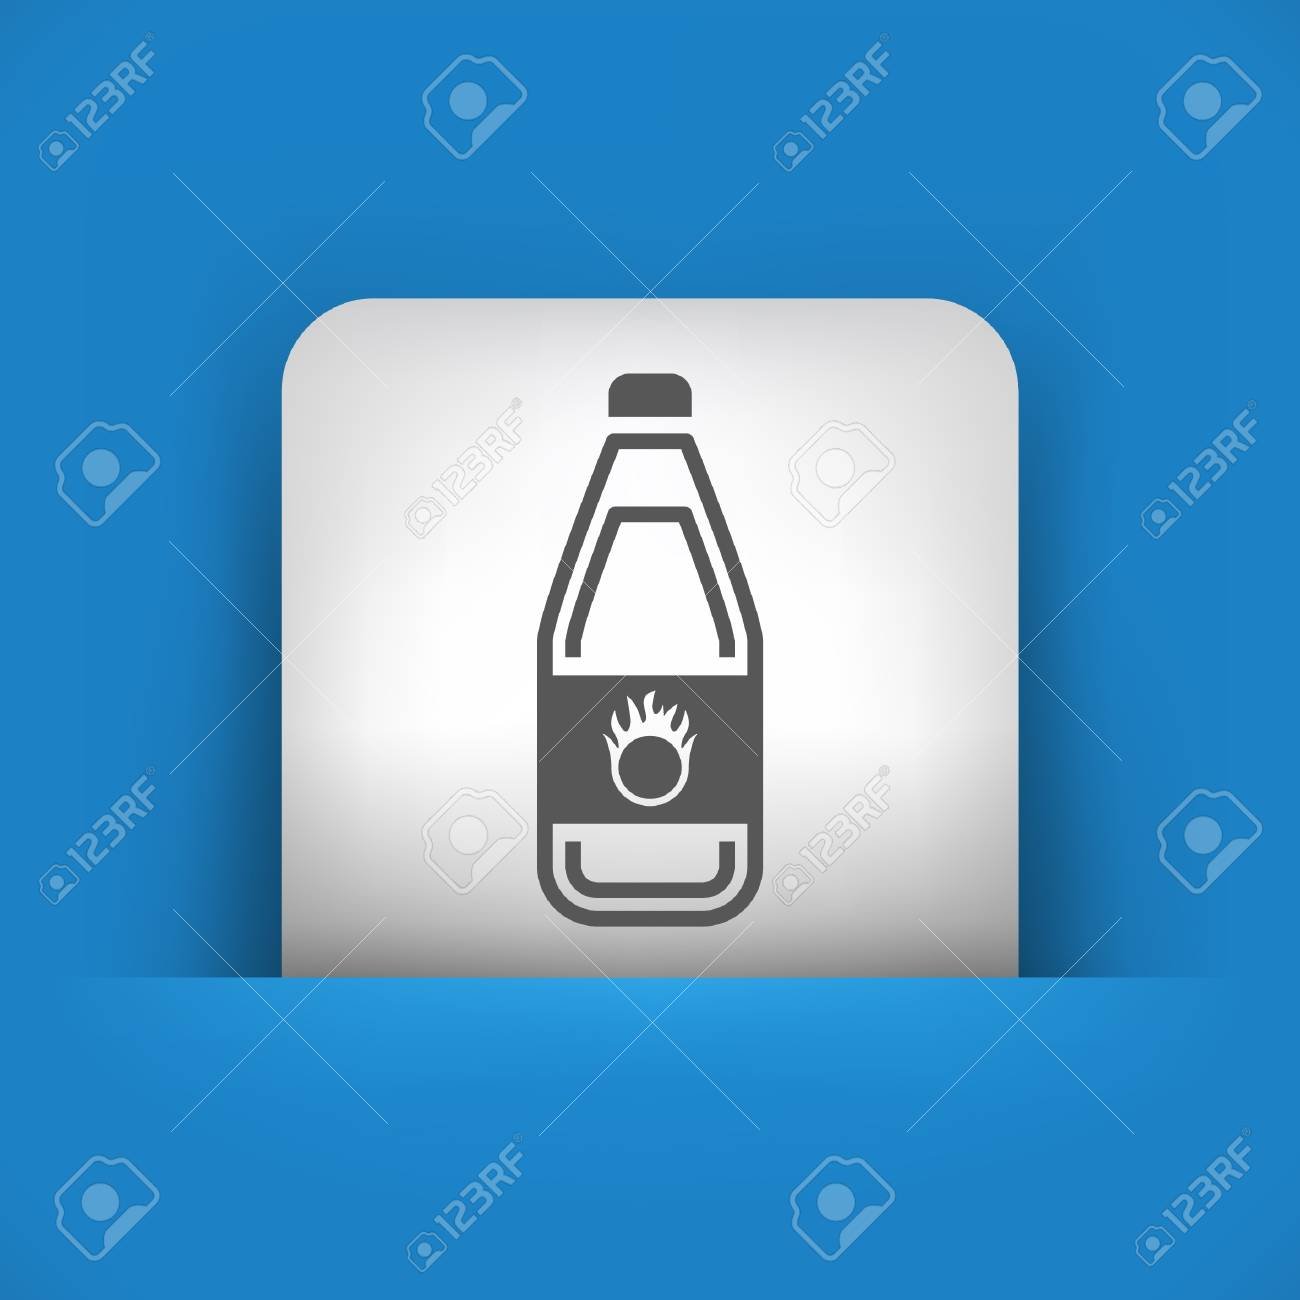 Vector illustration of single blue and gray isolated icon. Stock Vector - 17782686